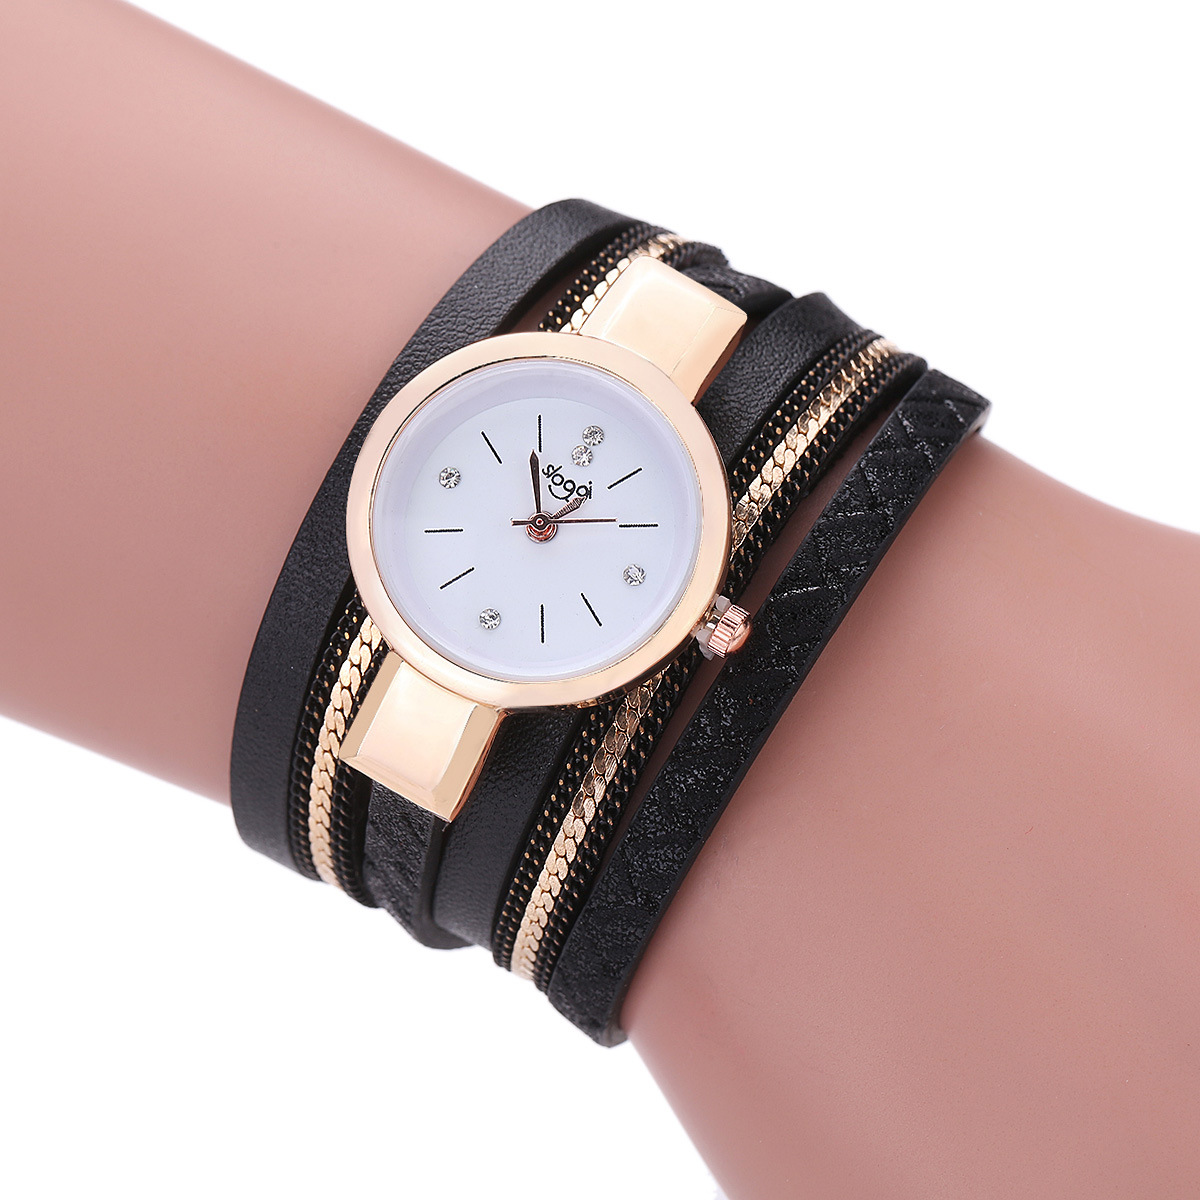 SLOGGI Brand Luxury Watches Women Fashion Gold Bracelet Watch Ladies Casual Leather Branded Quartz Wristwatches montre femme women s watches casual watches leather follow dreams words pattern leather watch women ladies quartz wristwatches montre femme